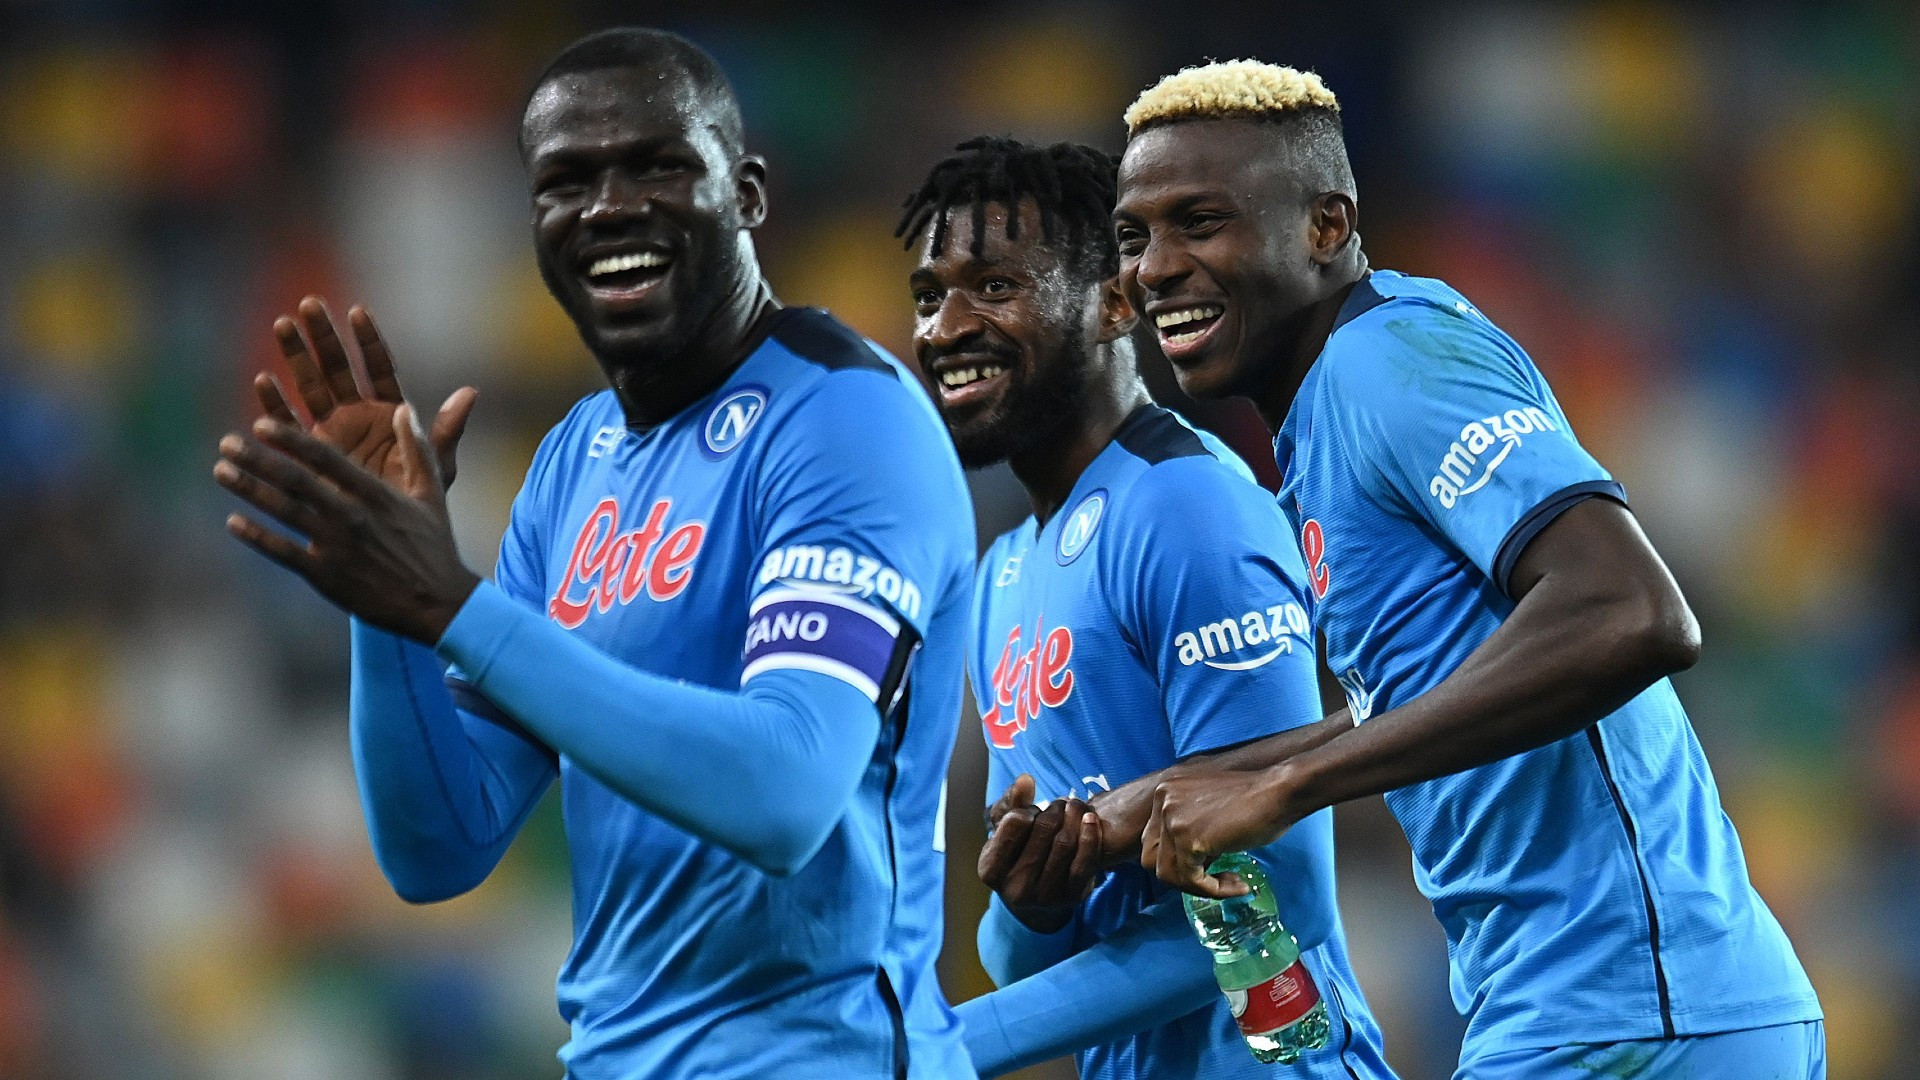 The mayor of Florence apologizes to Osimhen, Koulibaly, and Anguissa